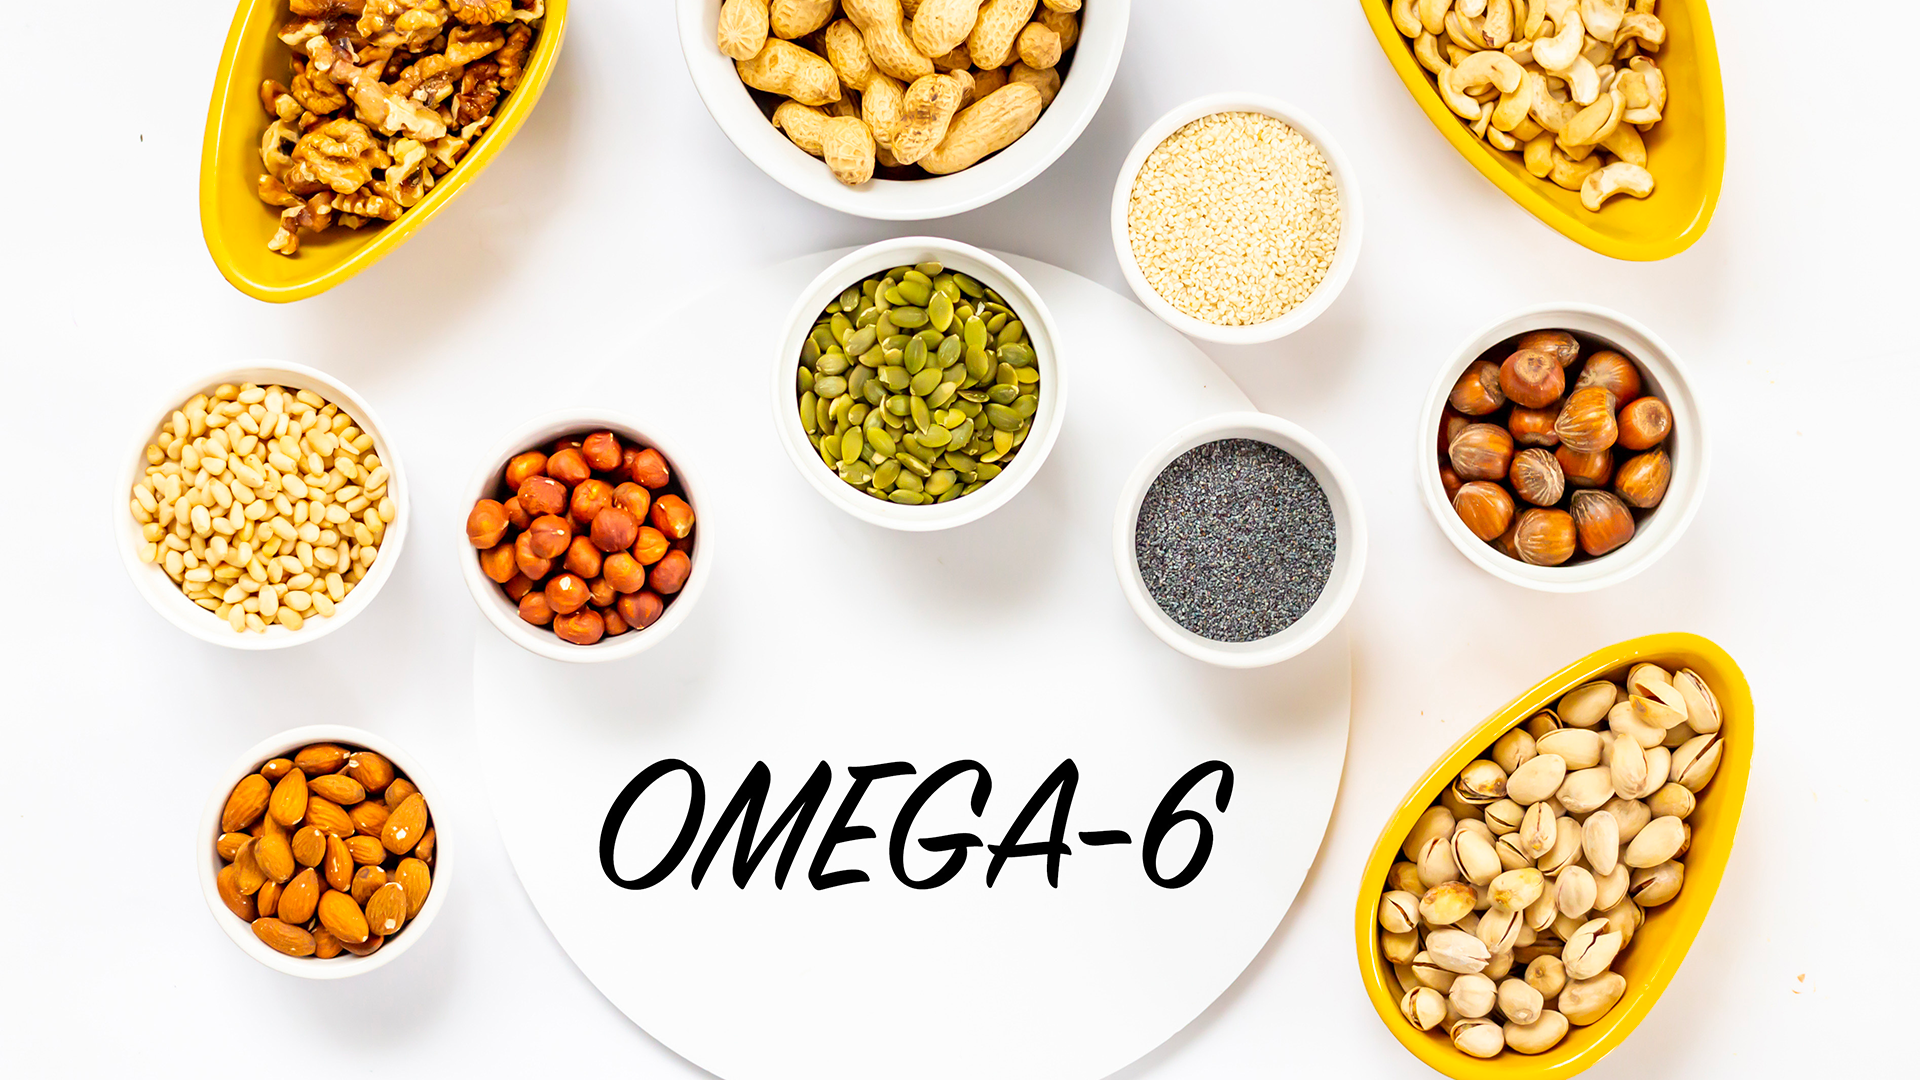 Nuts Omega-6s